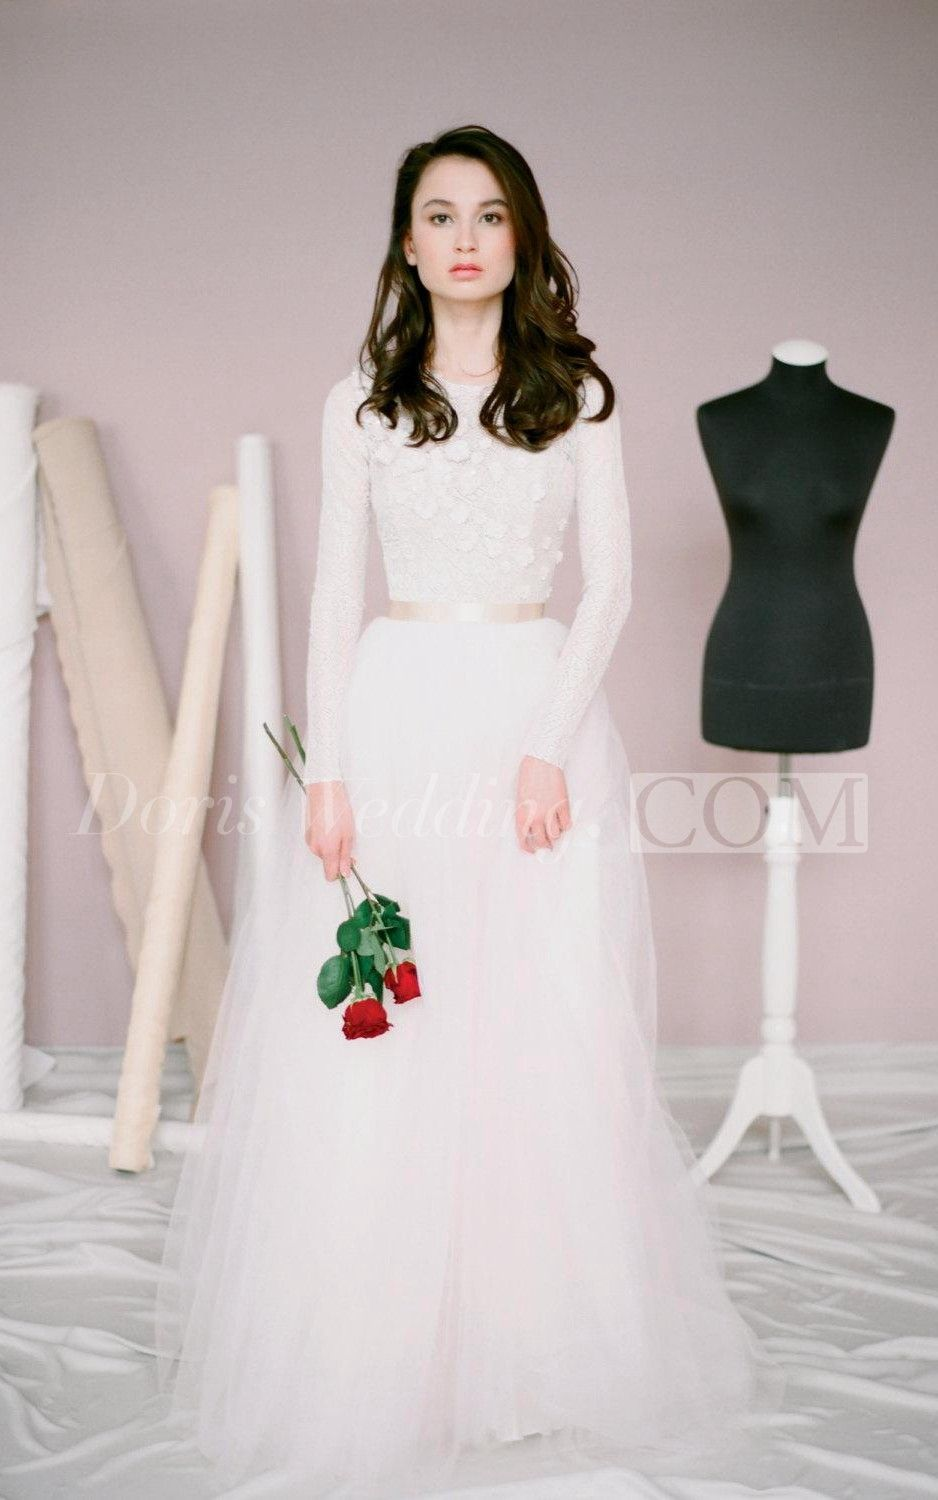 Long Sleeve Lace and Tulle Dress With Jewel Neckline and Petals